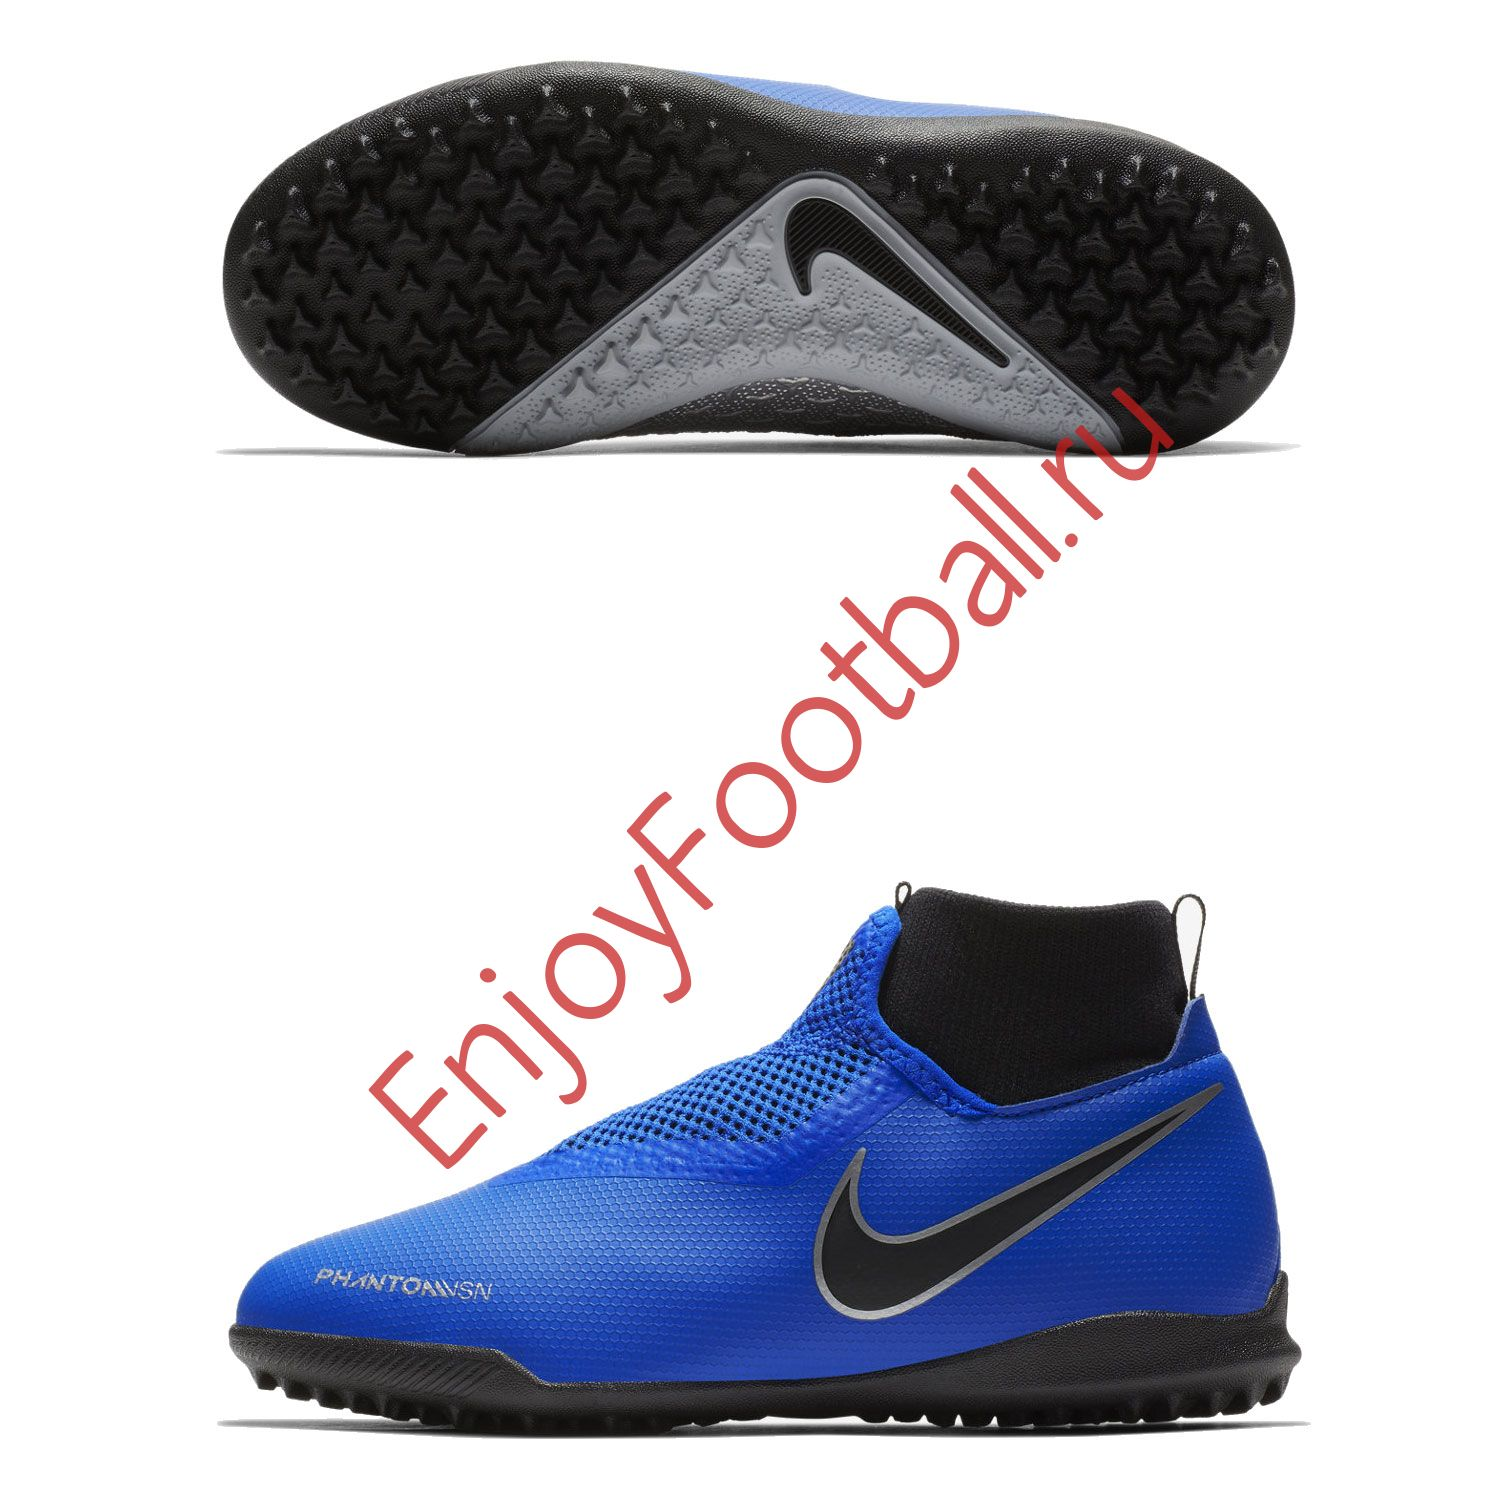 b964820c6e7e Детские шиповки NIKE PHANTOM VSN ACADEMY DF TF AO3292-400 JR купить ...